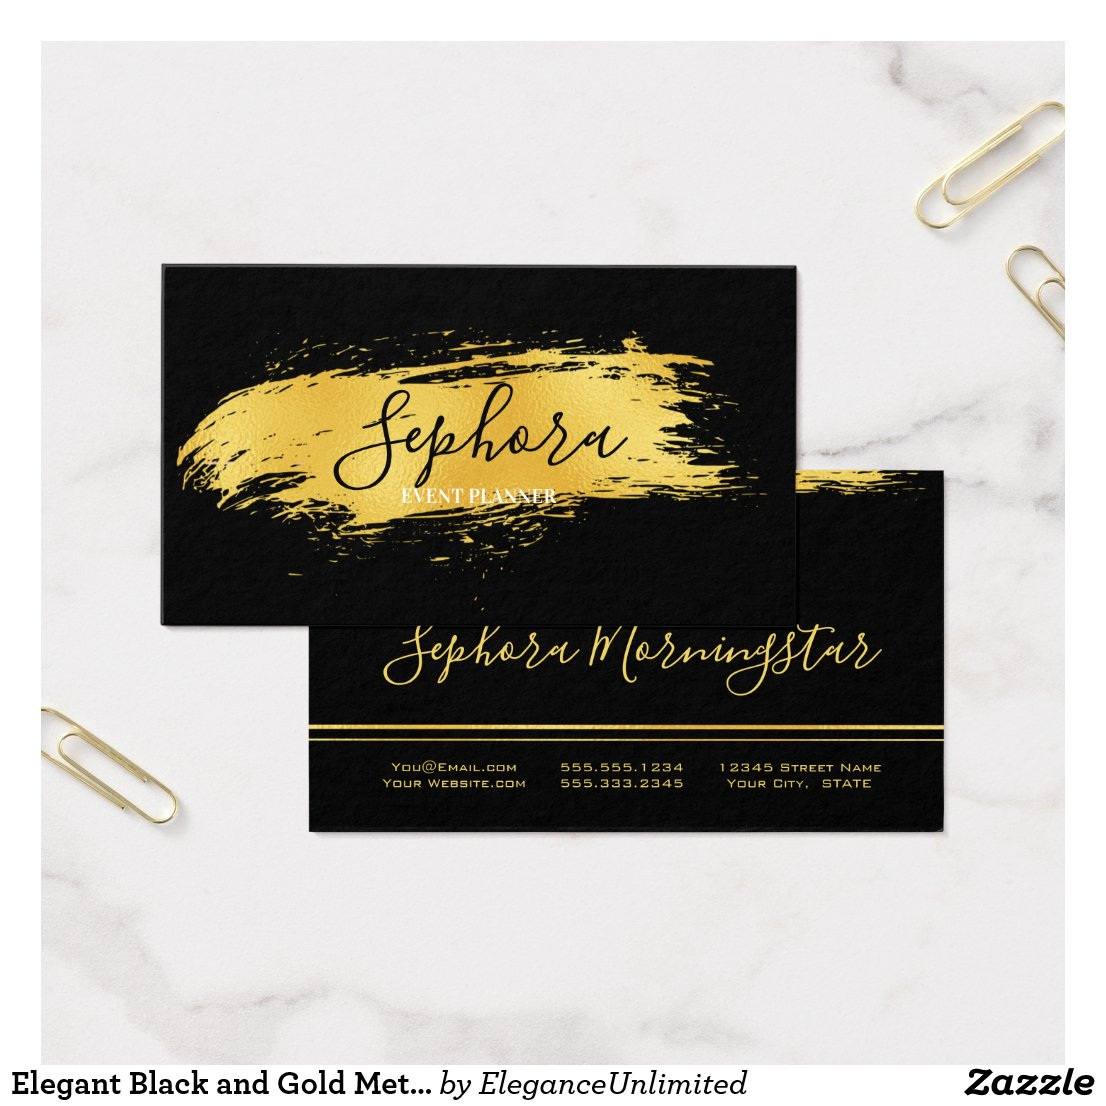 Elegant Black and Gold Metallic Foil Paint Stroke